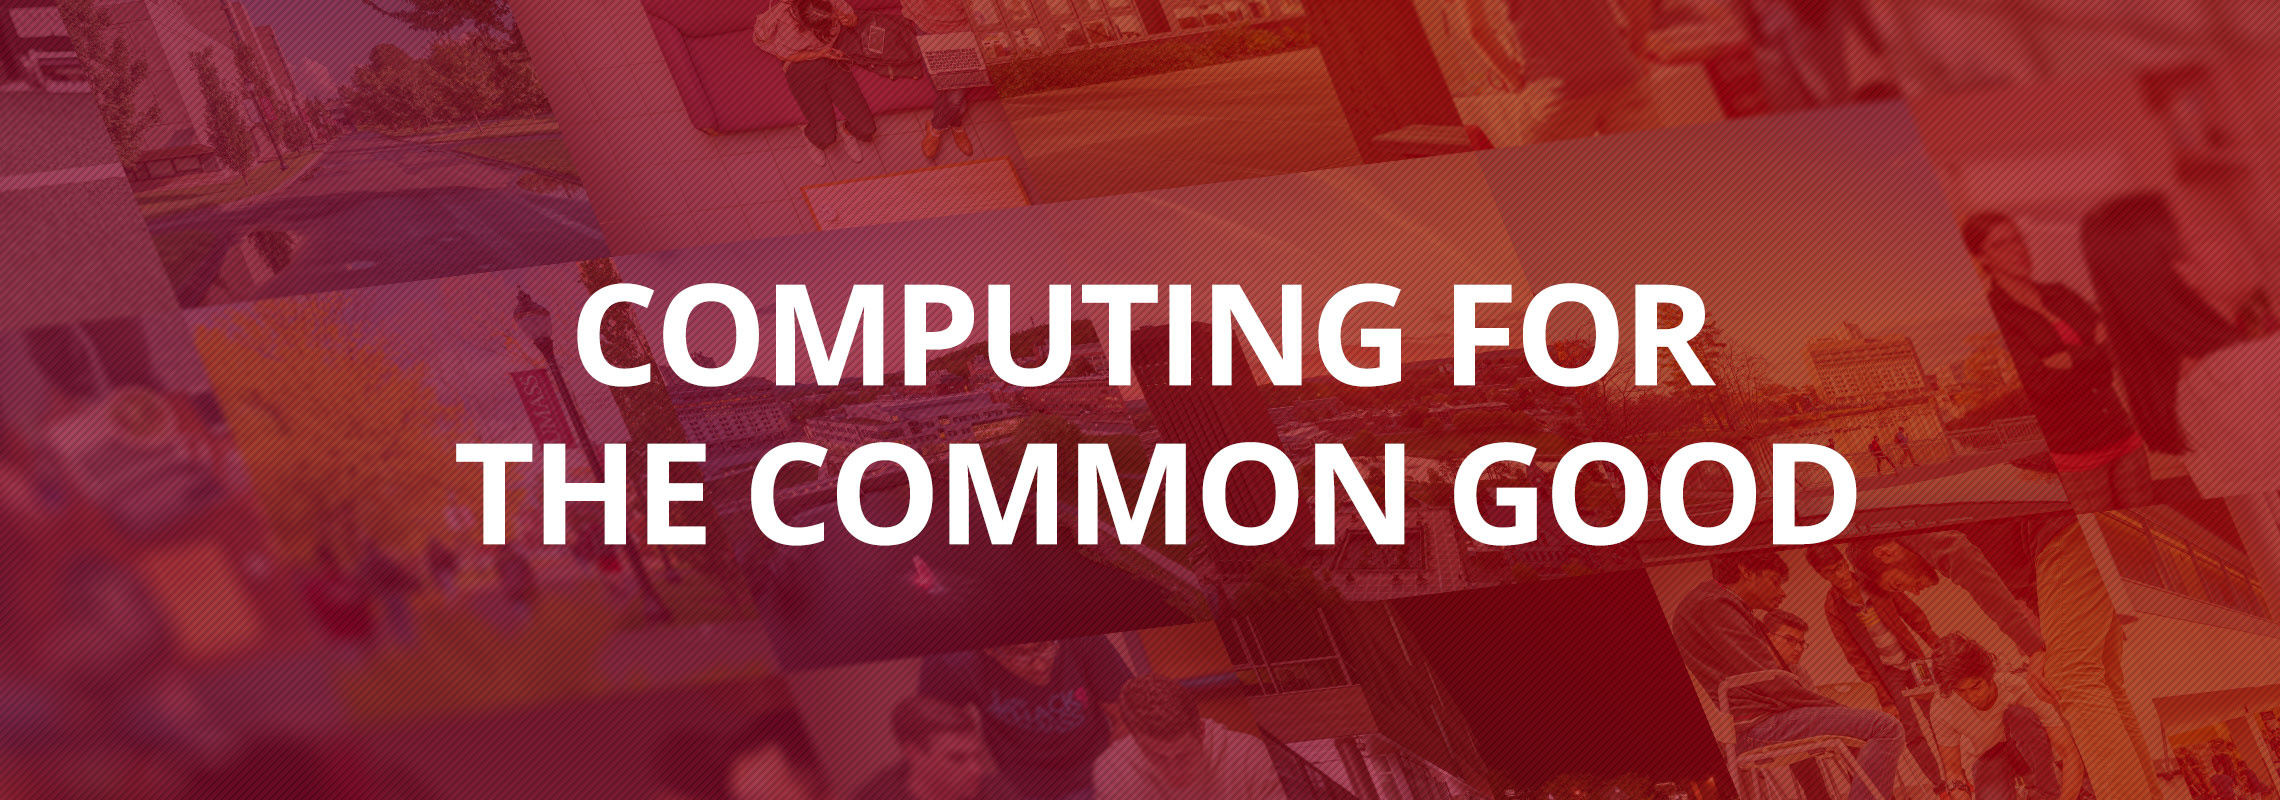 Computing for the Common Good